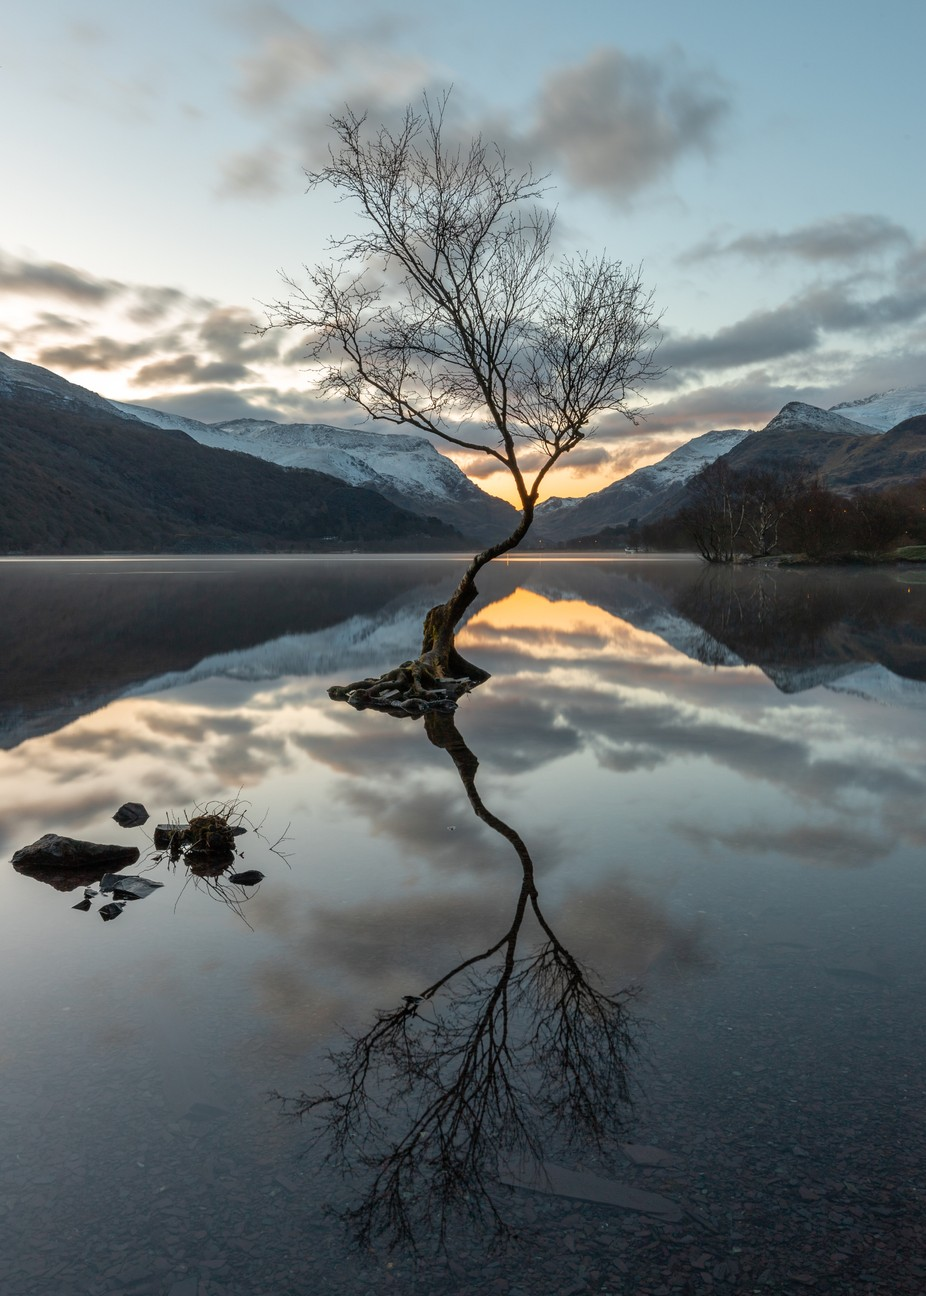 Lonely Tree At Dawn by jaybirmingham - Stillness Photo Contest